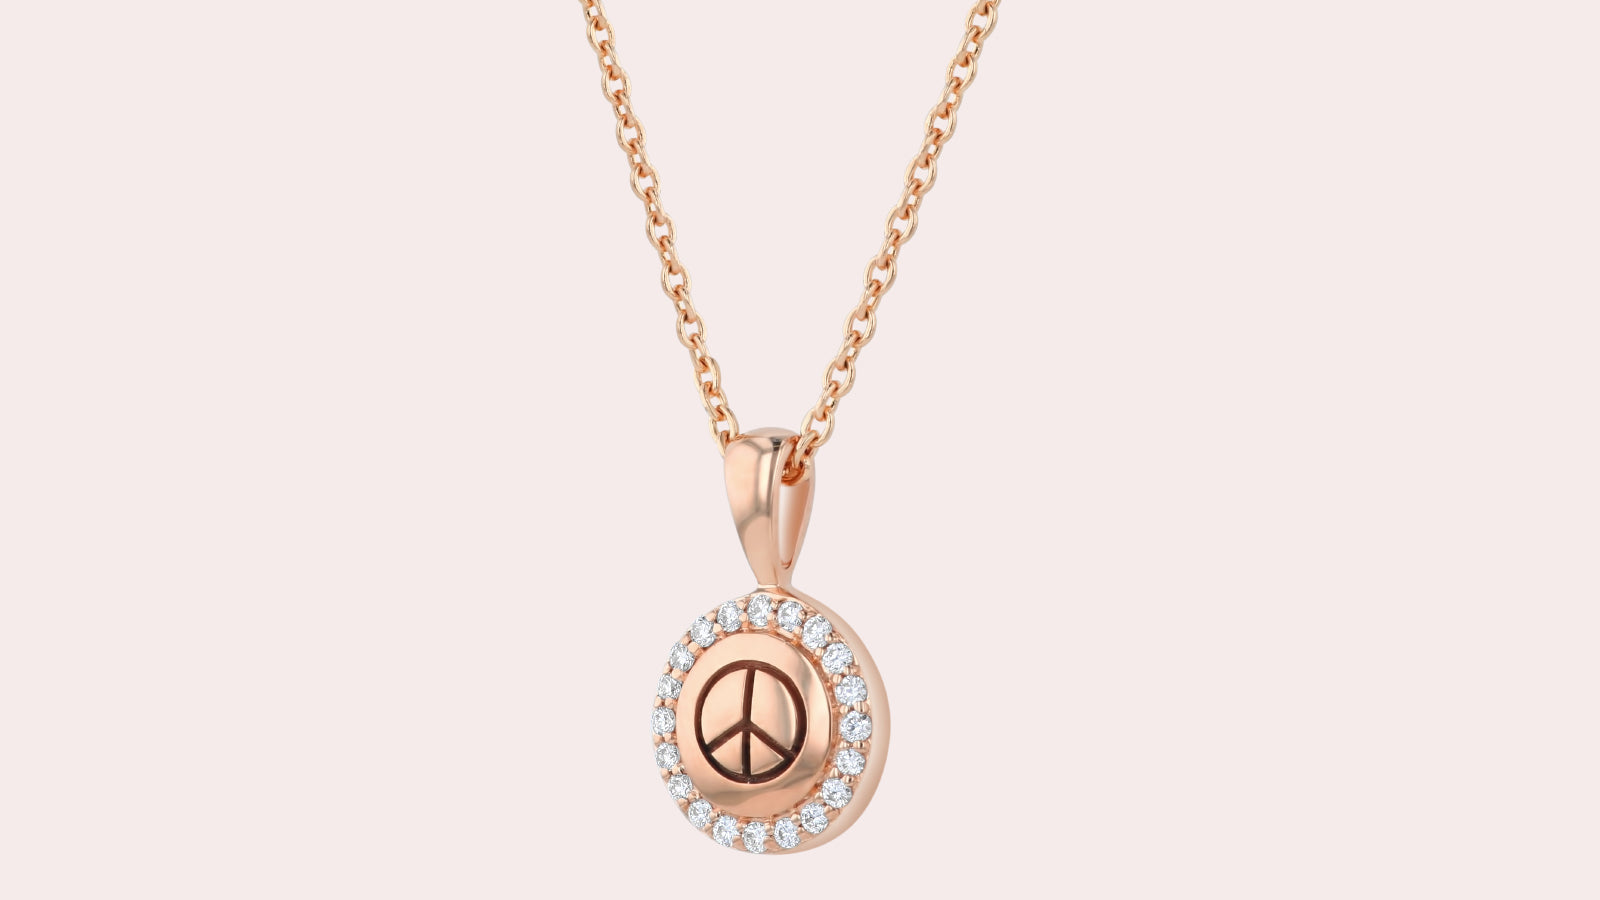 The Diamond Symbol Necklace